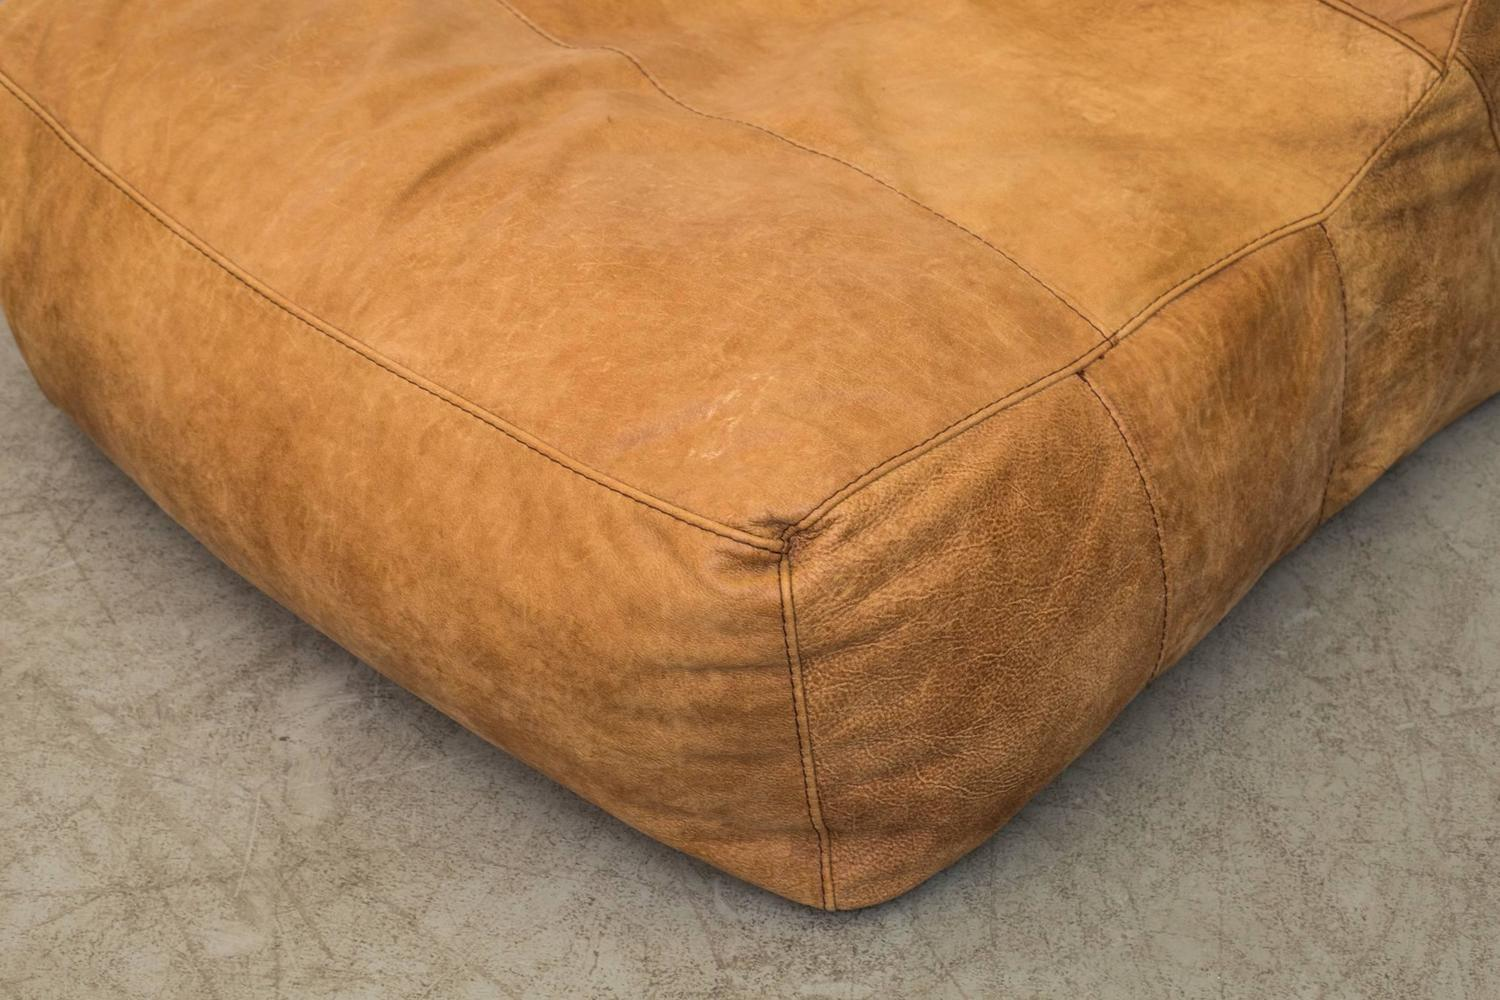 De Sede Style Leather Soft Form Bean Bag Lounge Chair at 1stdibs